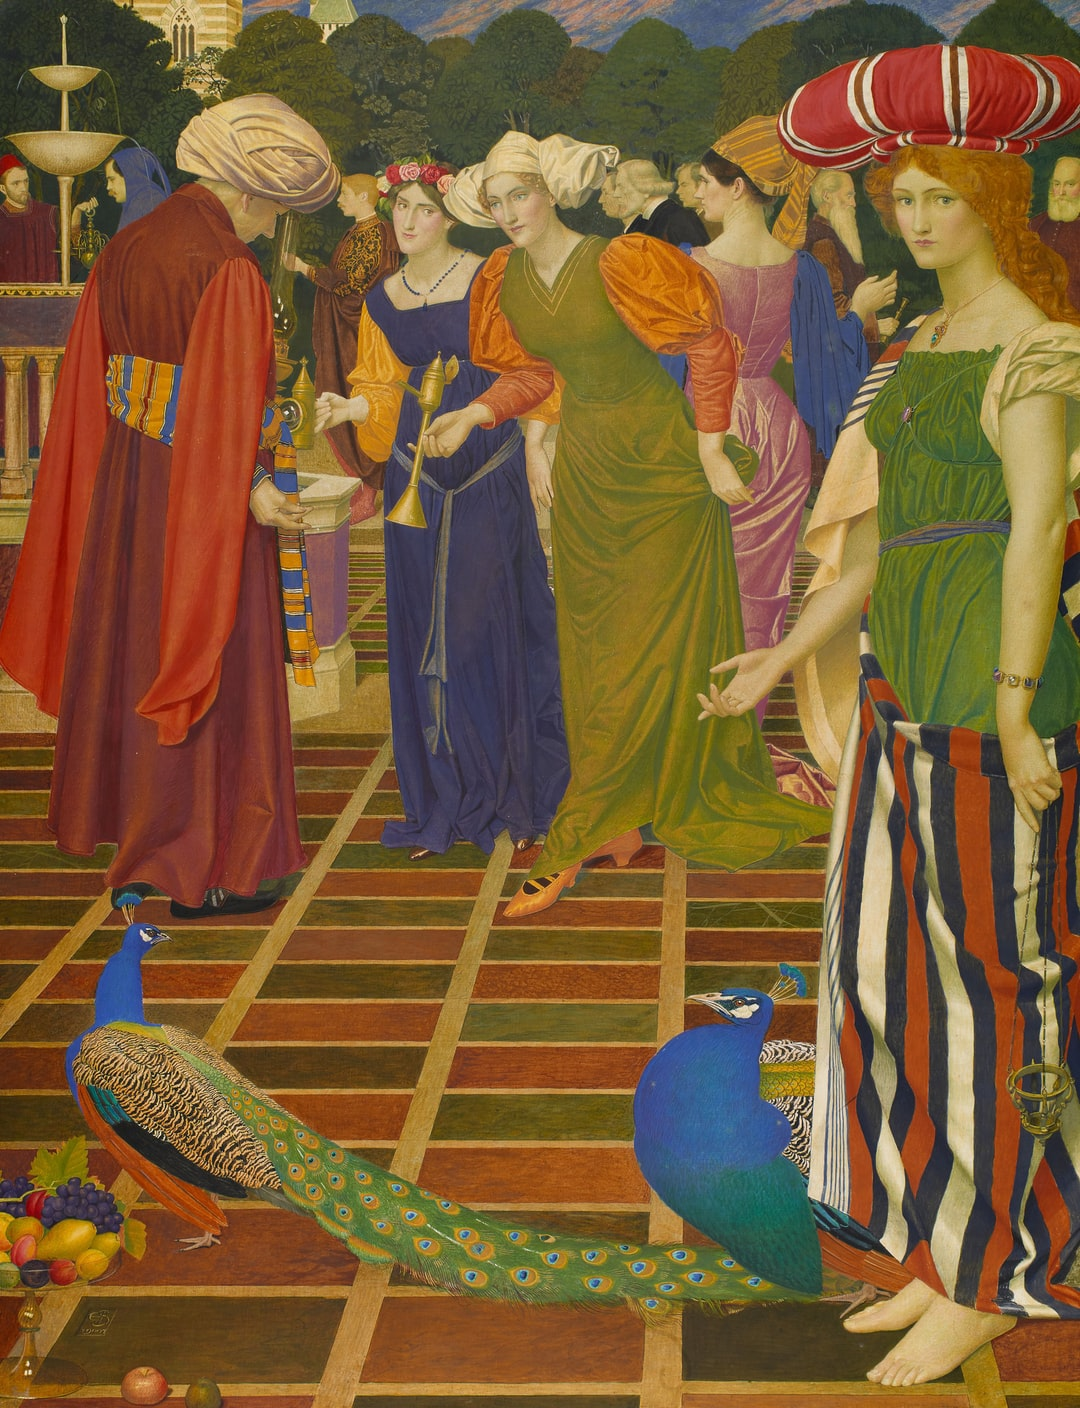 New Lamps for Old. Artist: Joseph Edward Southall. Gilder: Anna Elizabeth Southall. The subject is taken from story of Aladdin in the One Thousand and One Nights (The Arabian Nights)